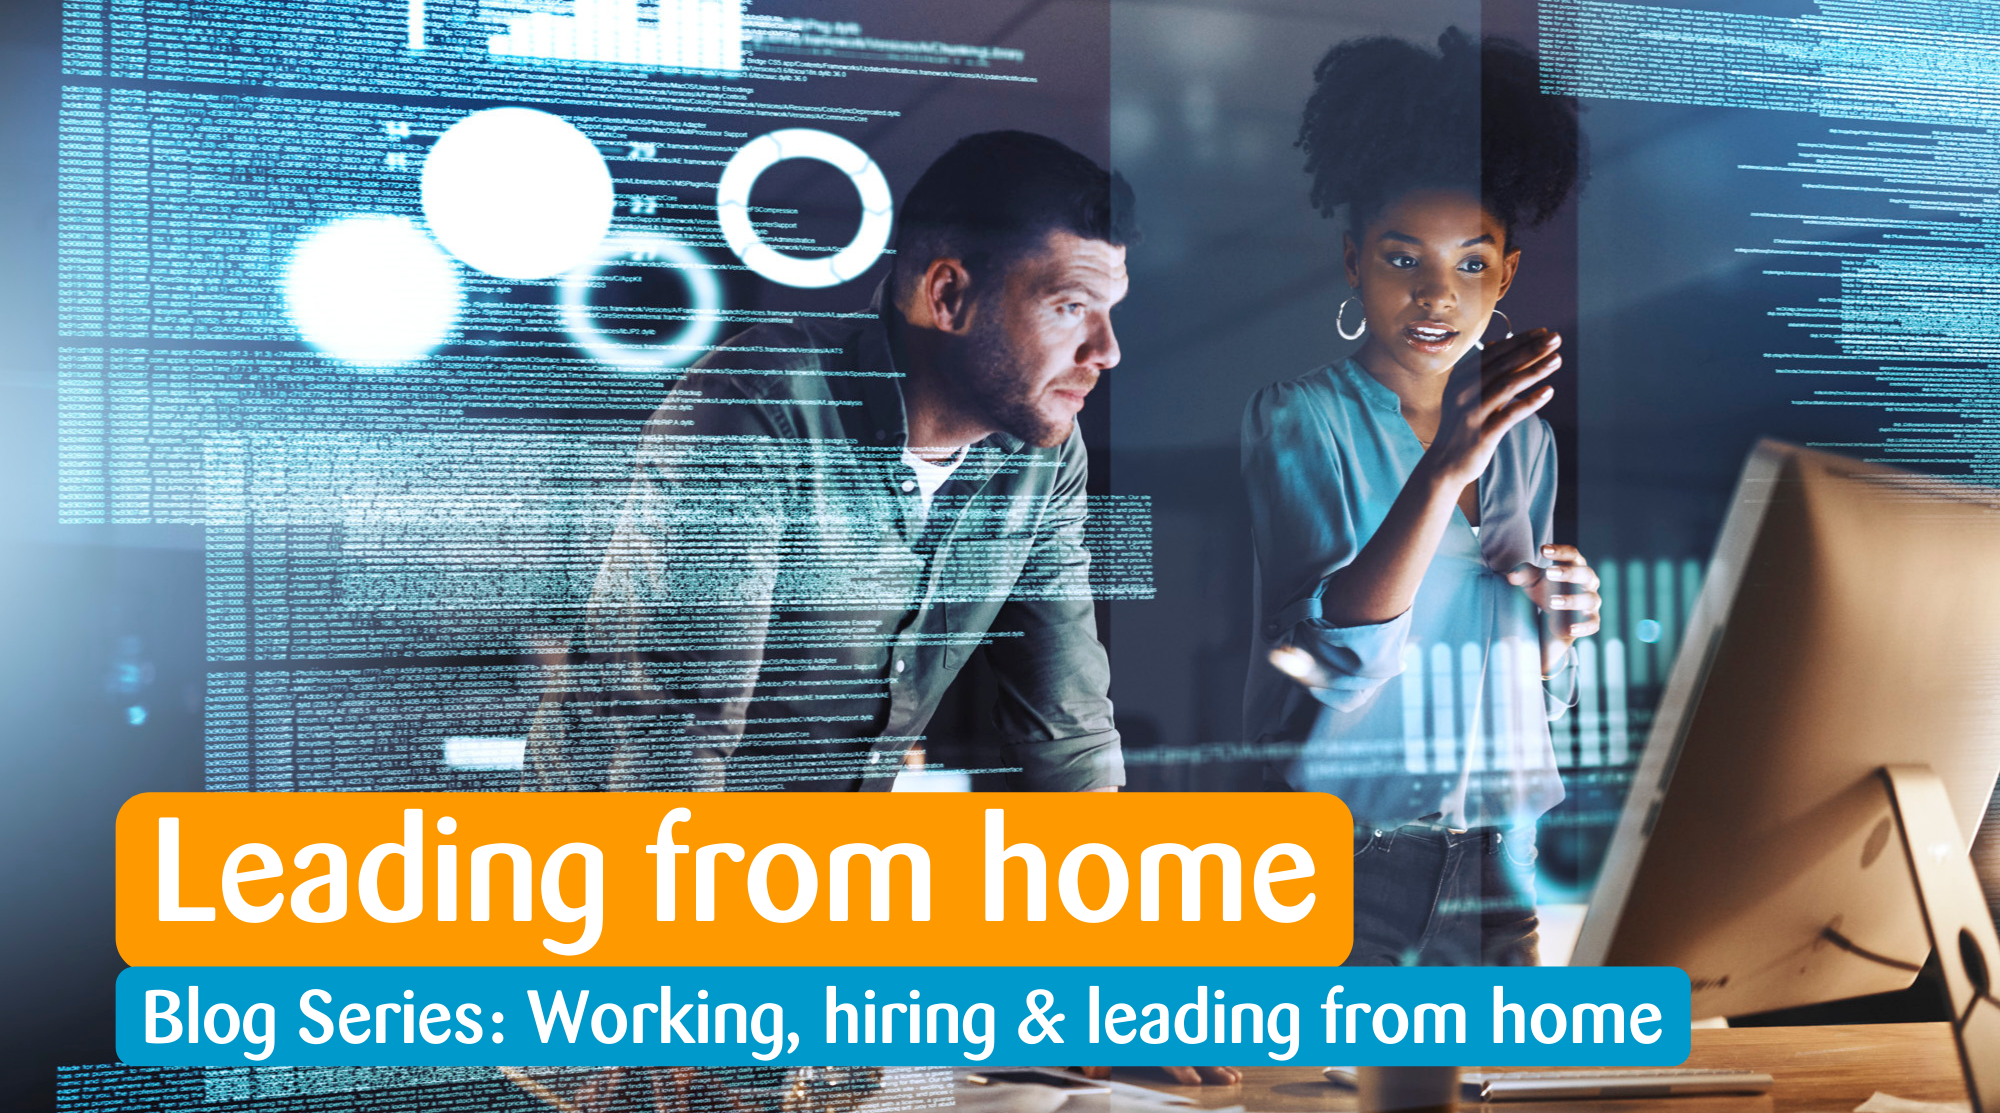 Leading from home - blog series about working, hiring and leading from home